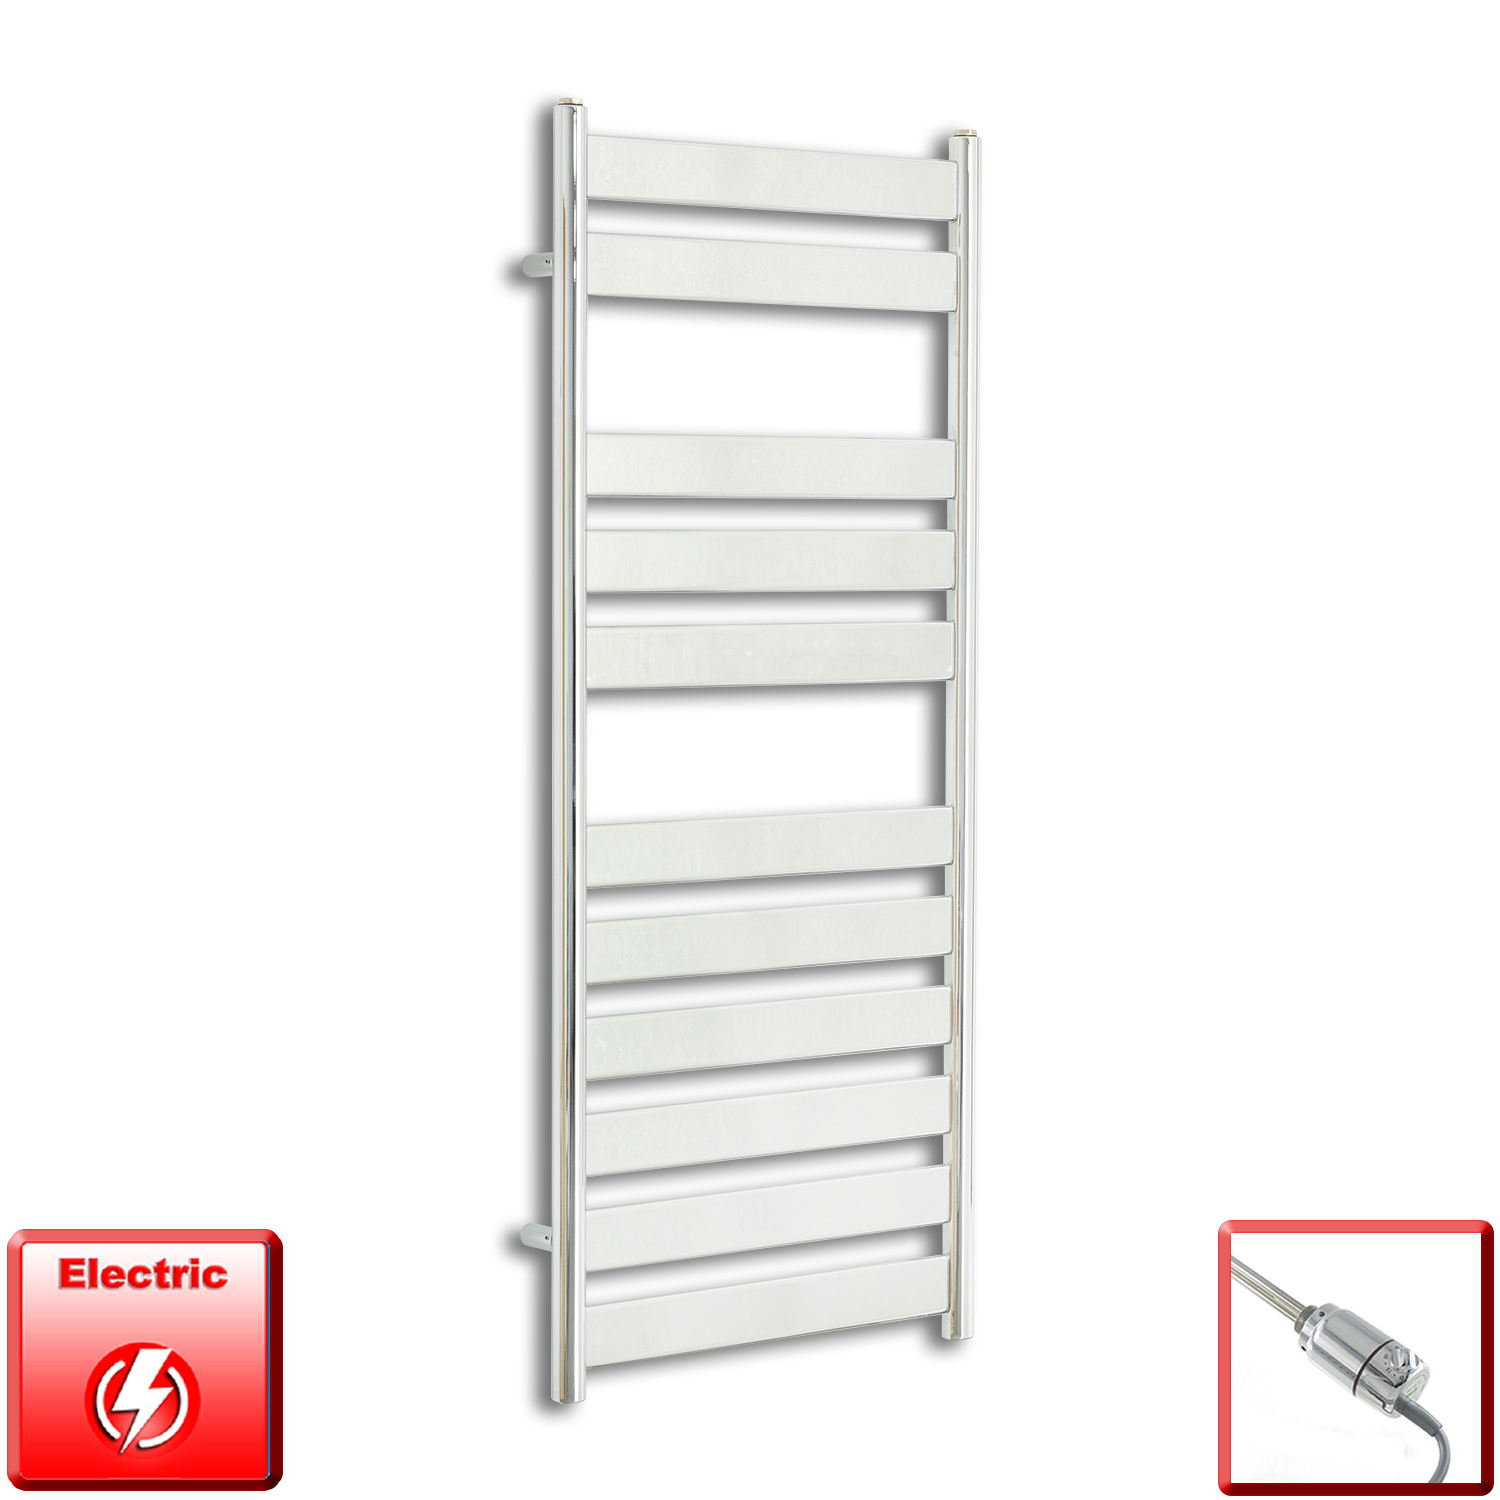 500mm Wide 1200mm High Pre-Filled Chrome Electric Towel Rail Radiator With Thermostatic GT Element